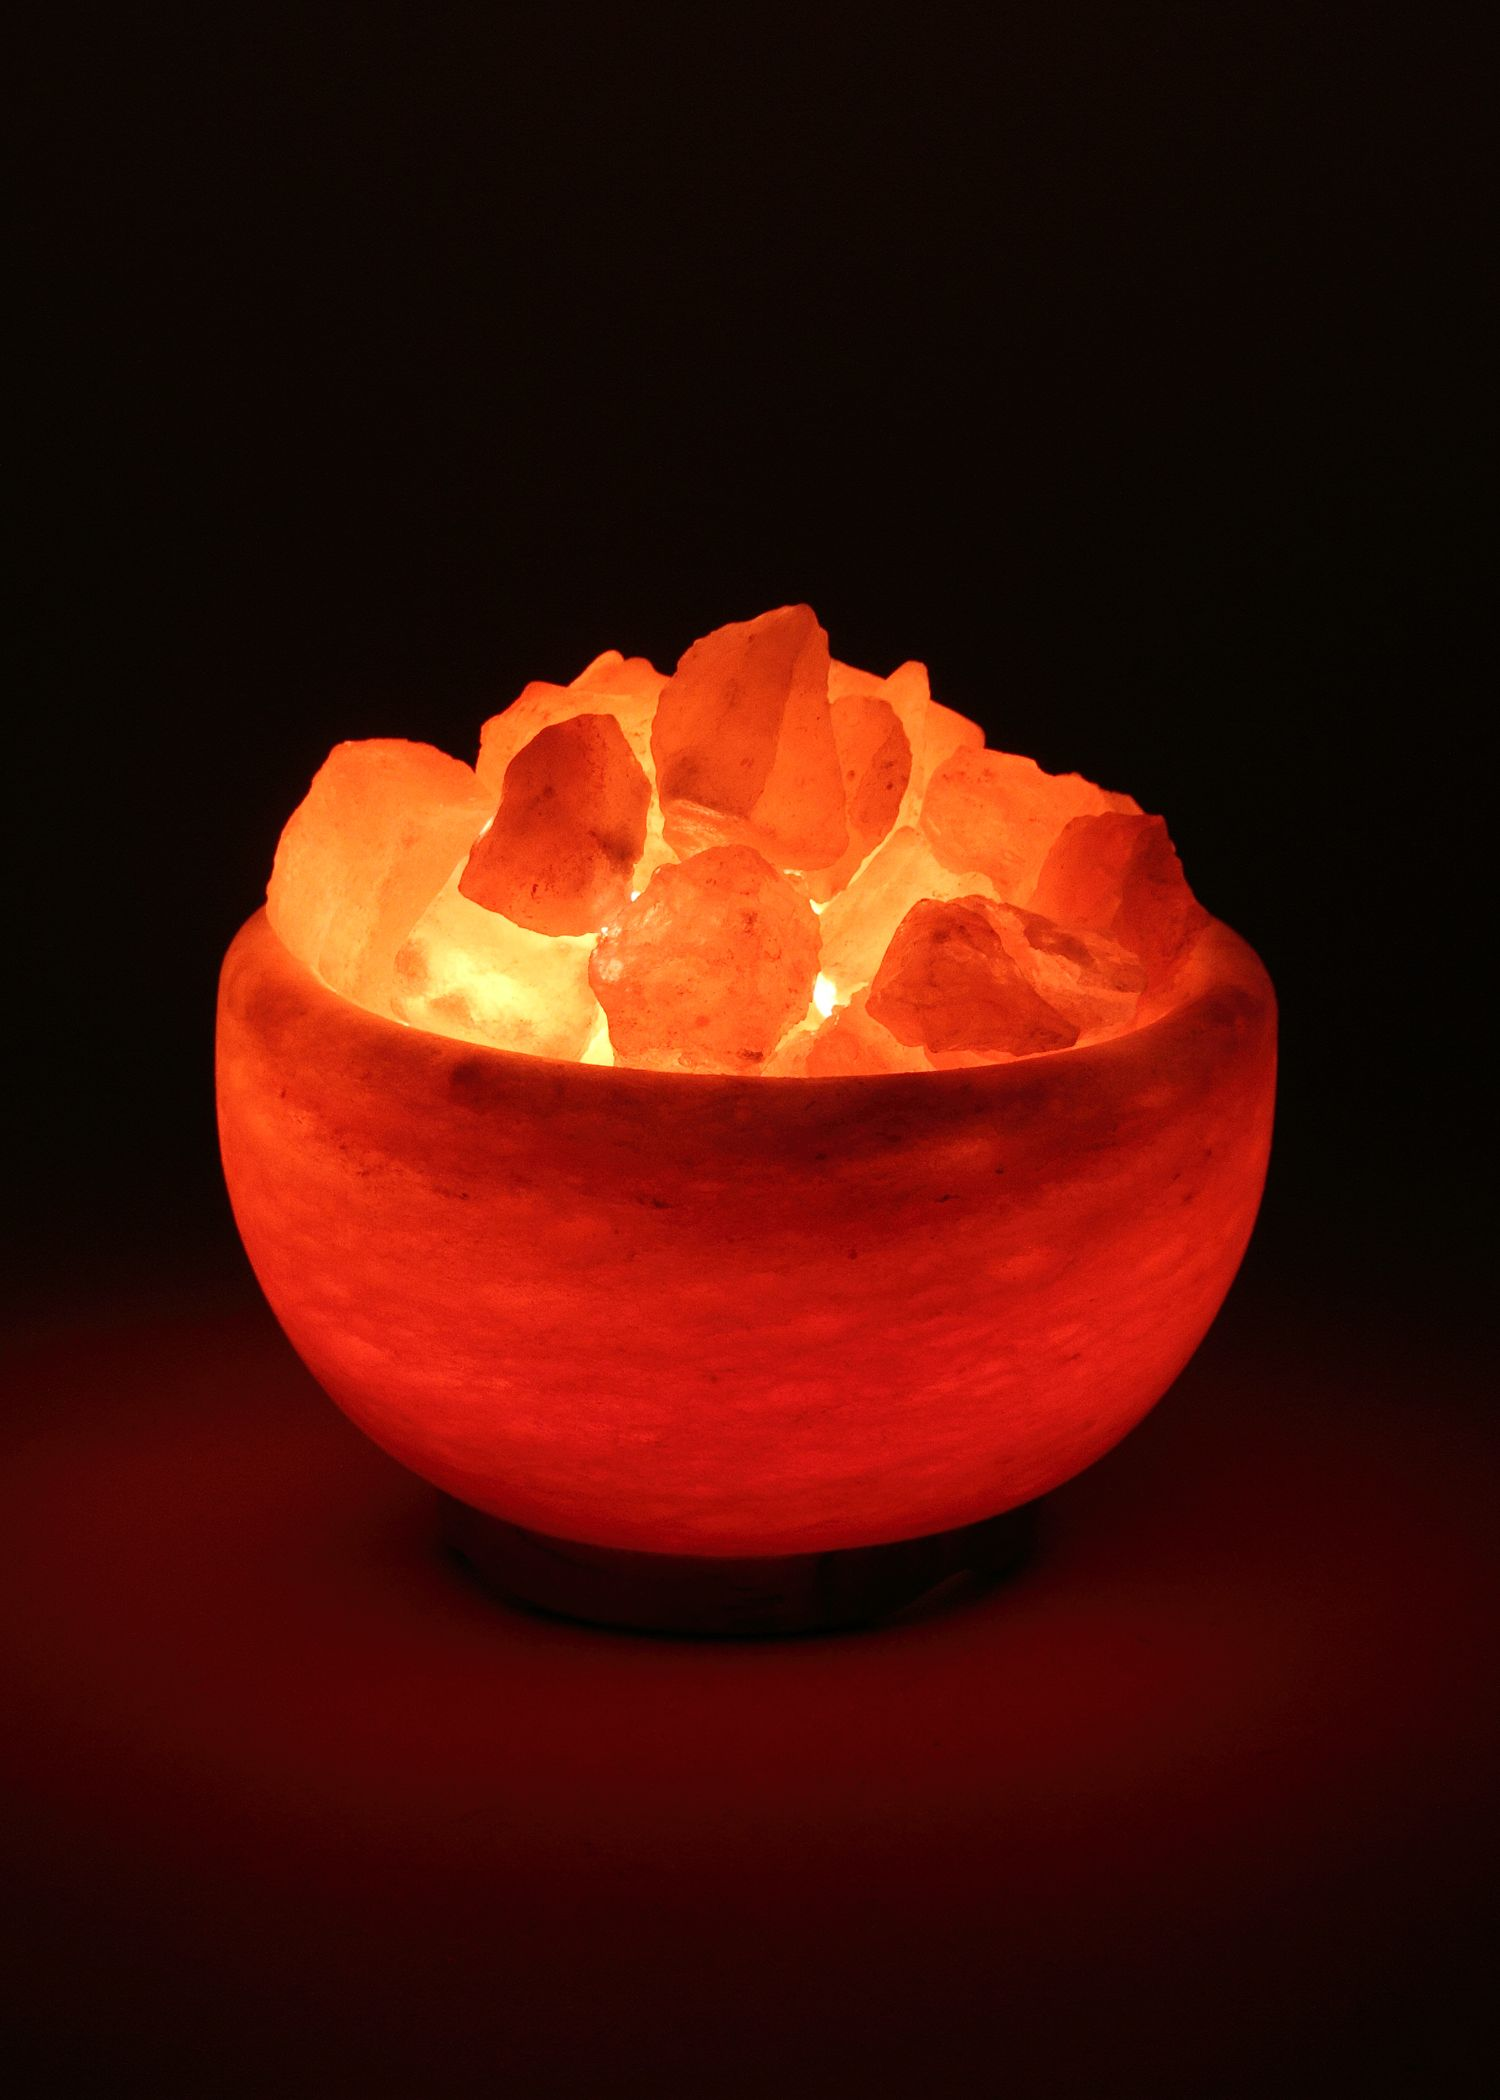 Himalayan Salt Lamps Wholesale Amazing Healthy Life Cycle Retail And Wholesale Himalayan Salt Lamps And Inspiration